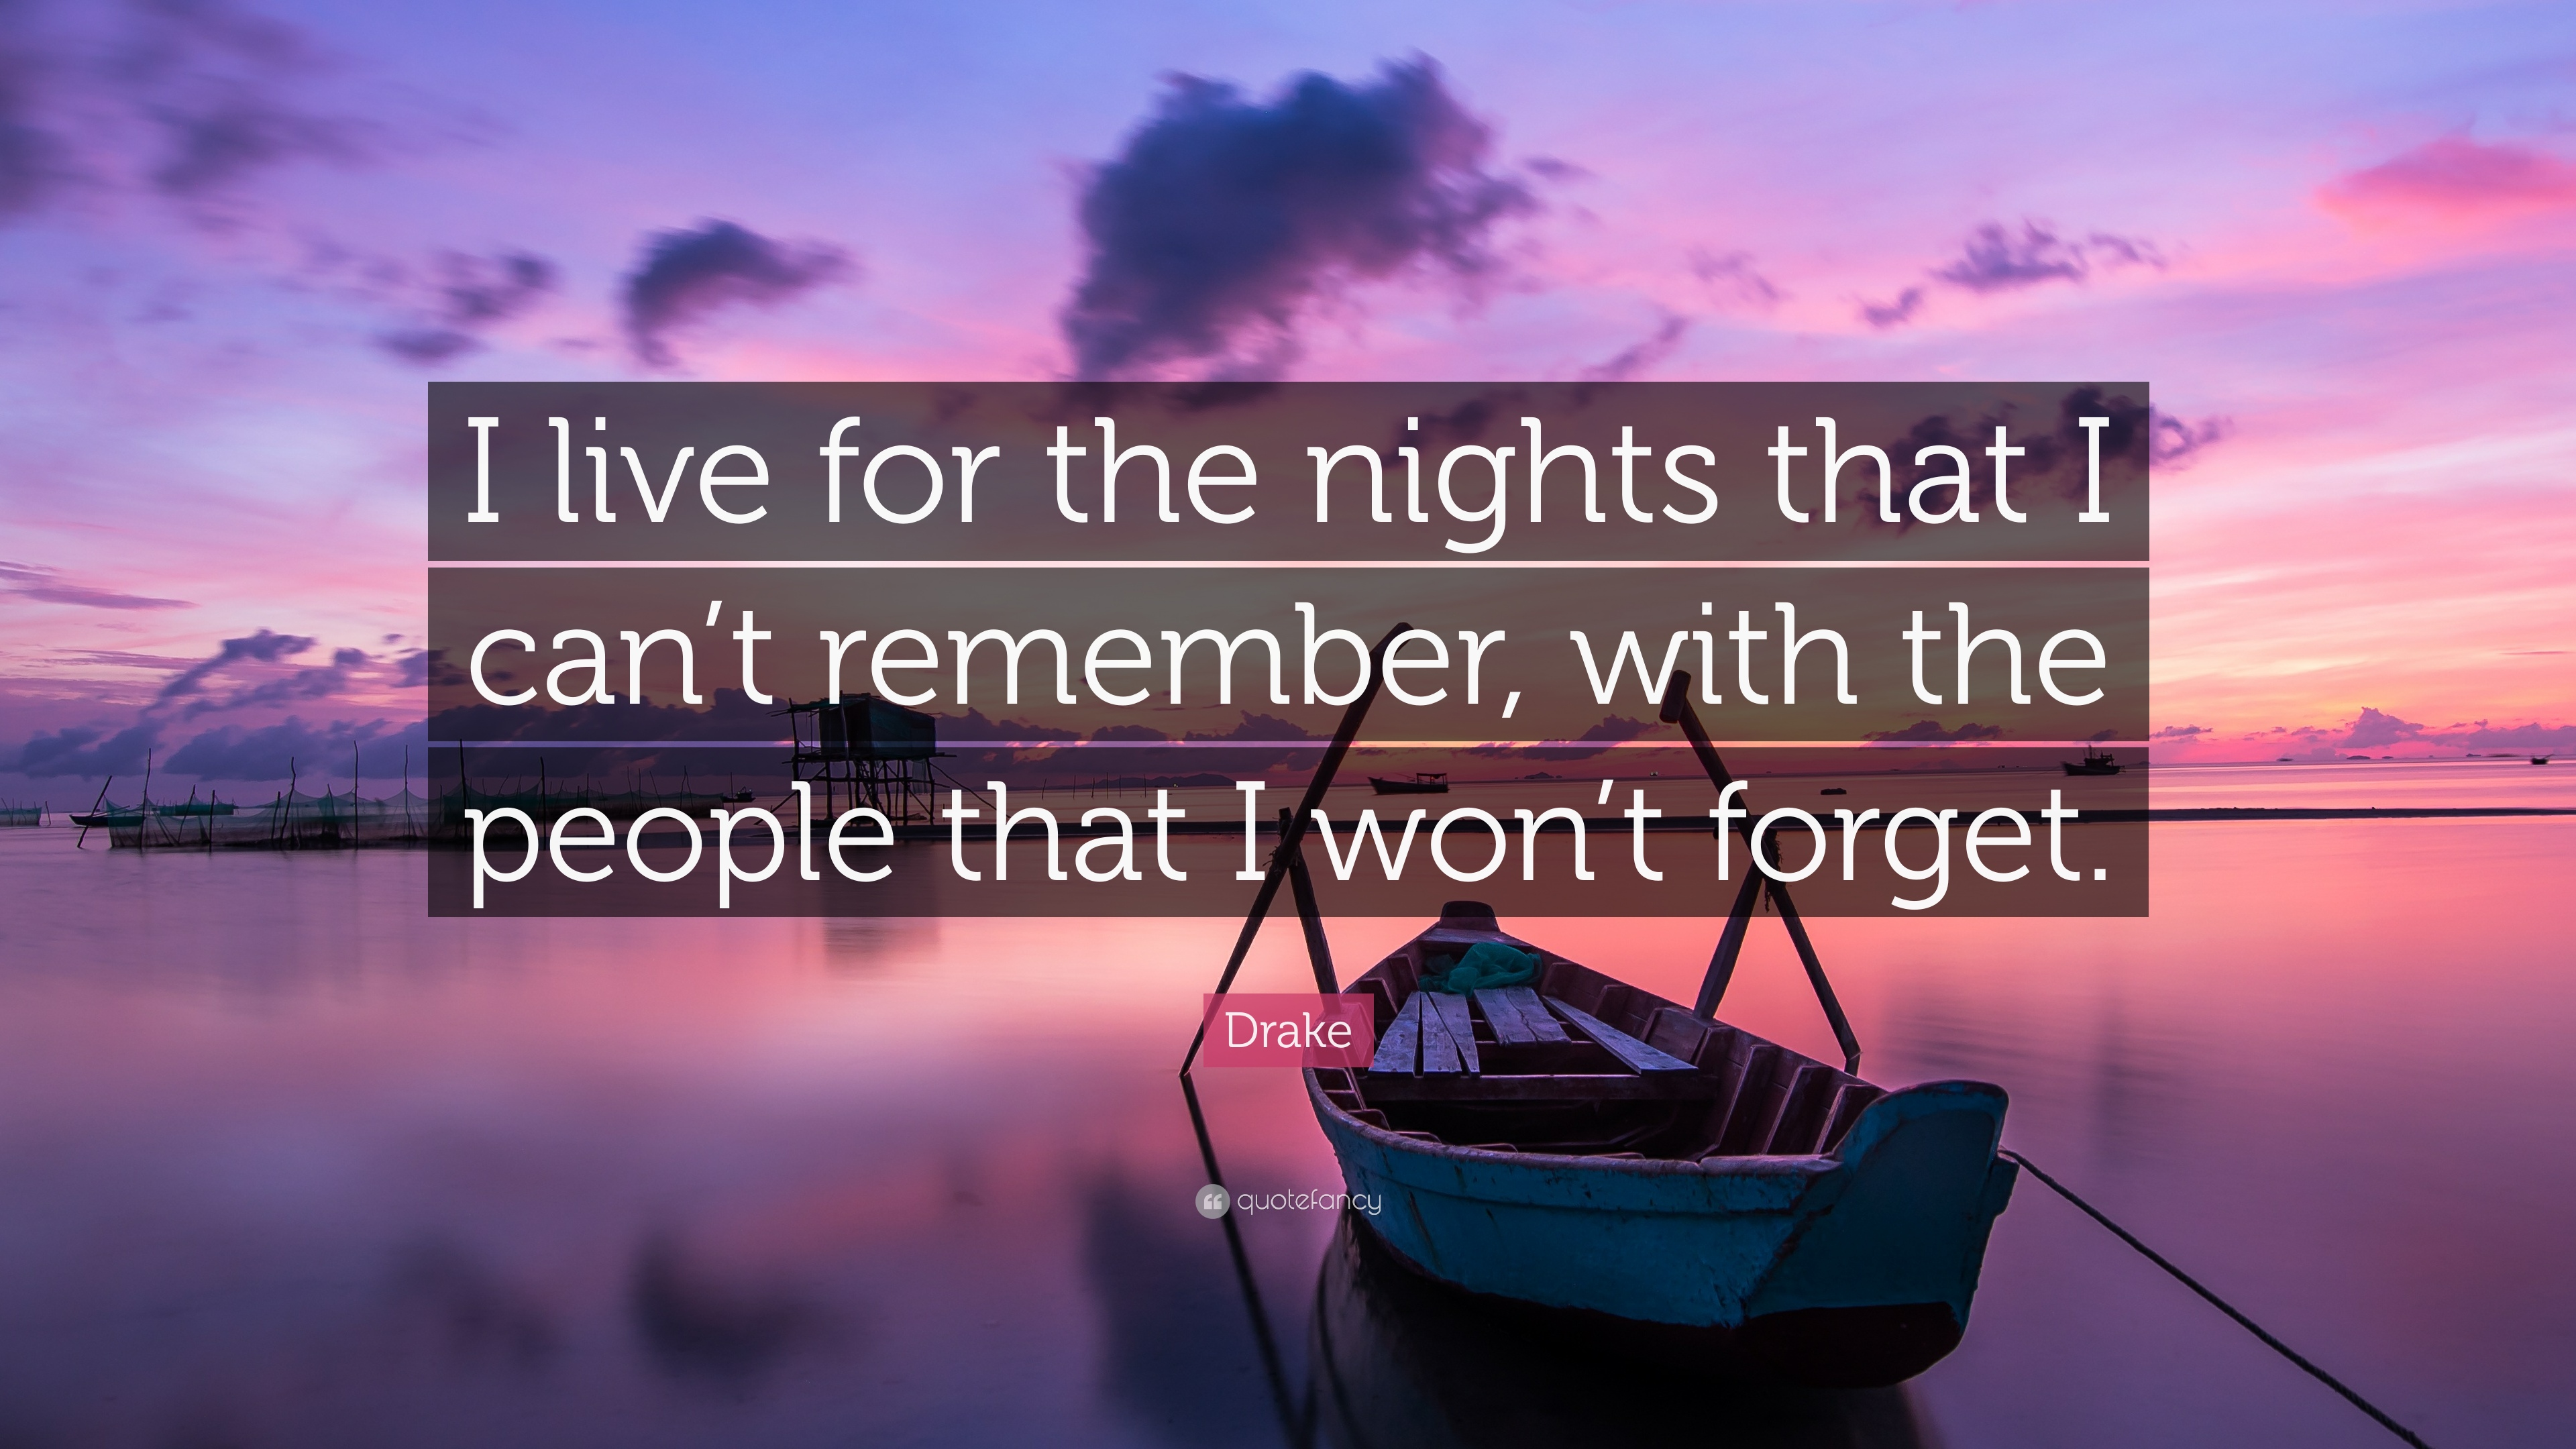 Superb Drake Quote: U201cI Live For The Nights That I Canu0027t Remember,